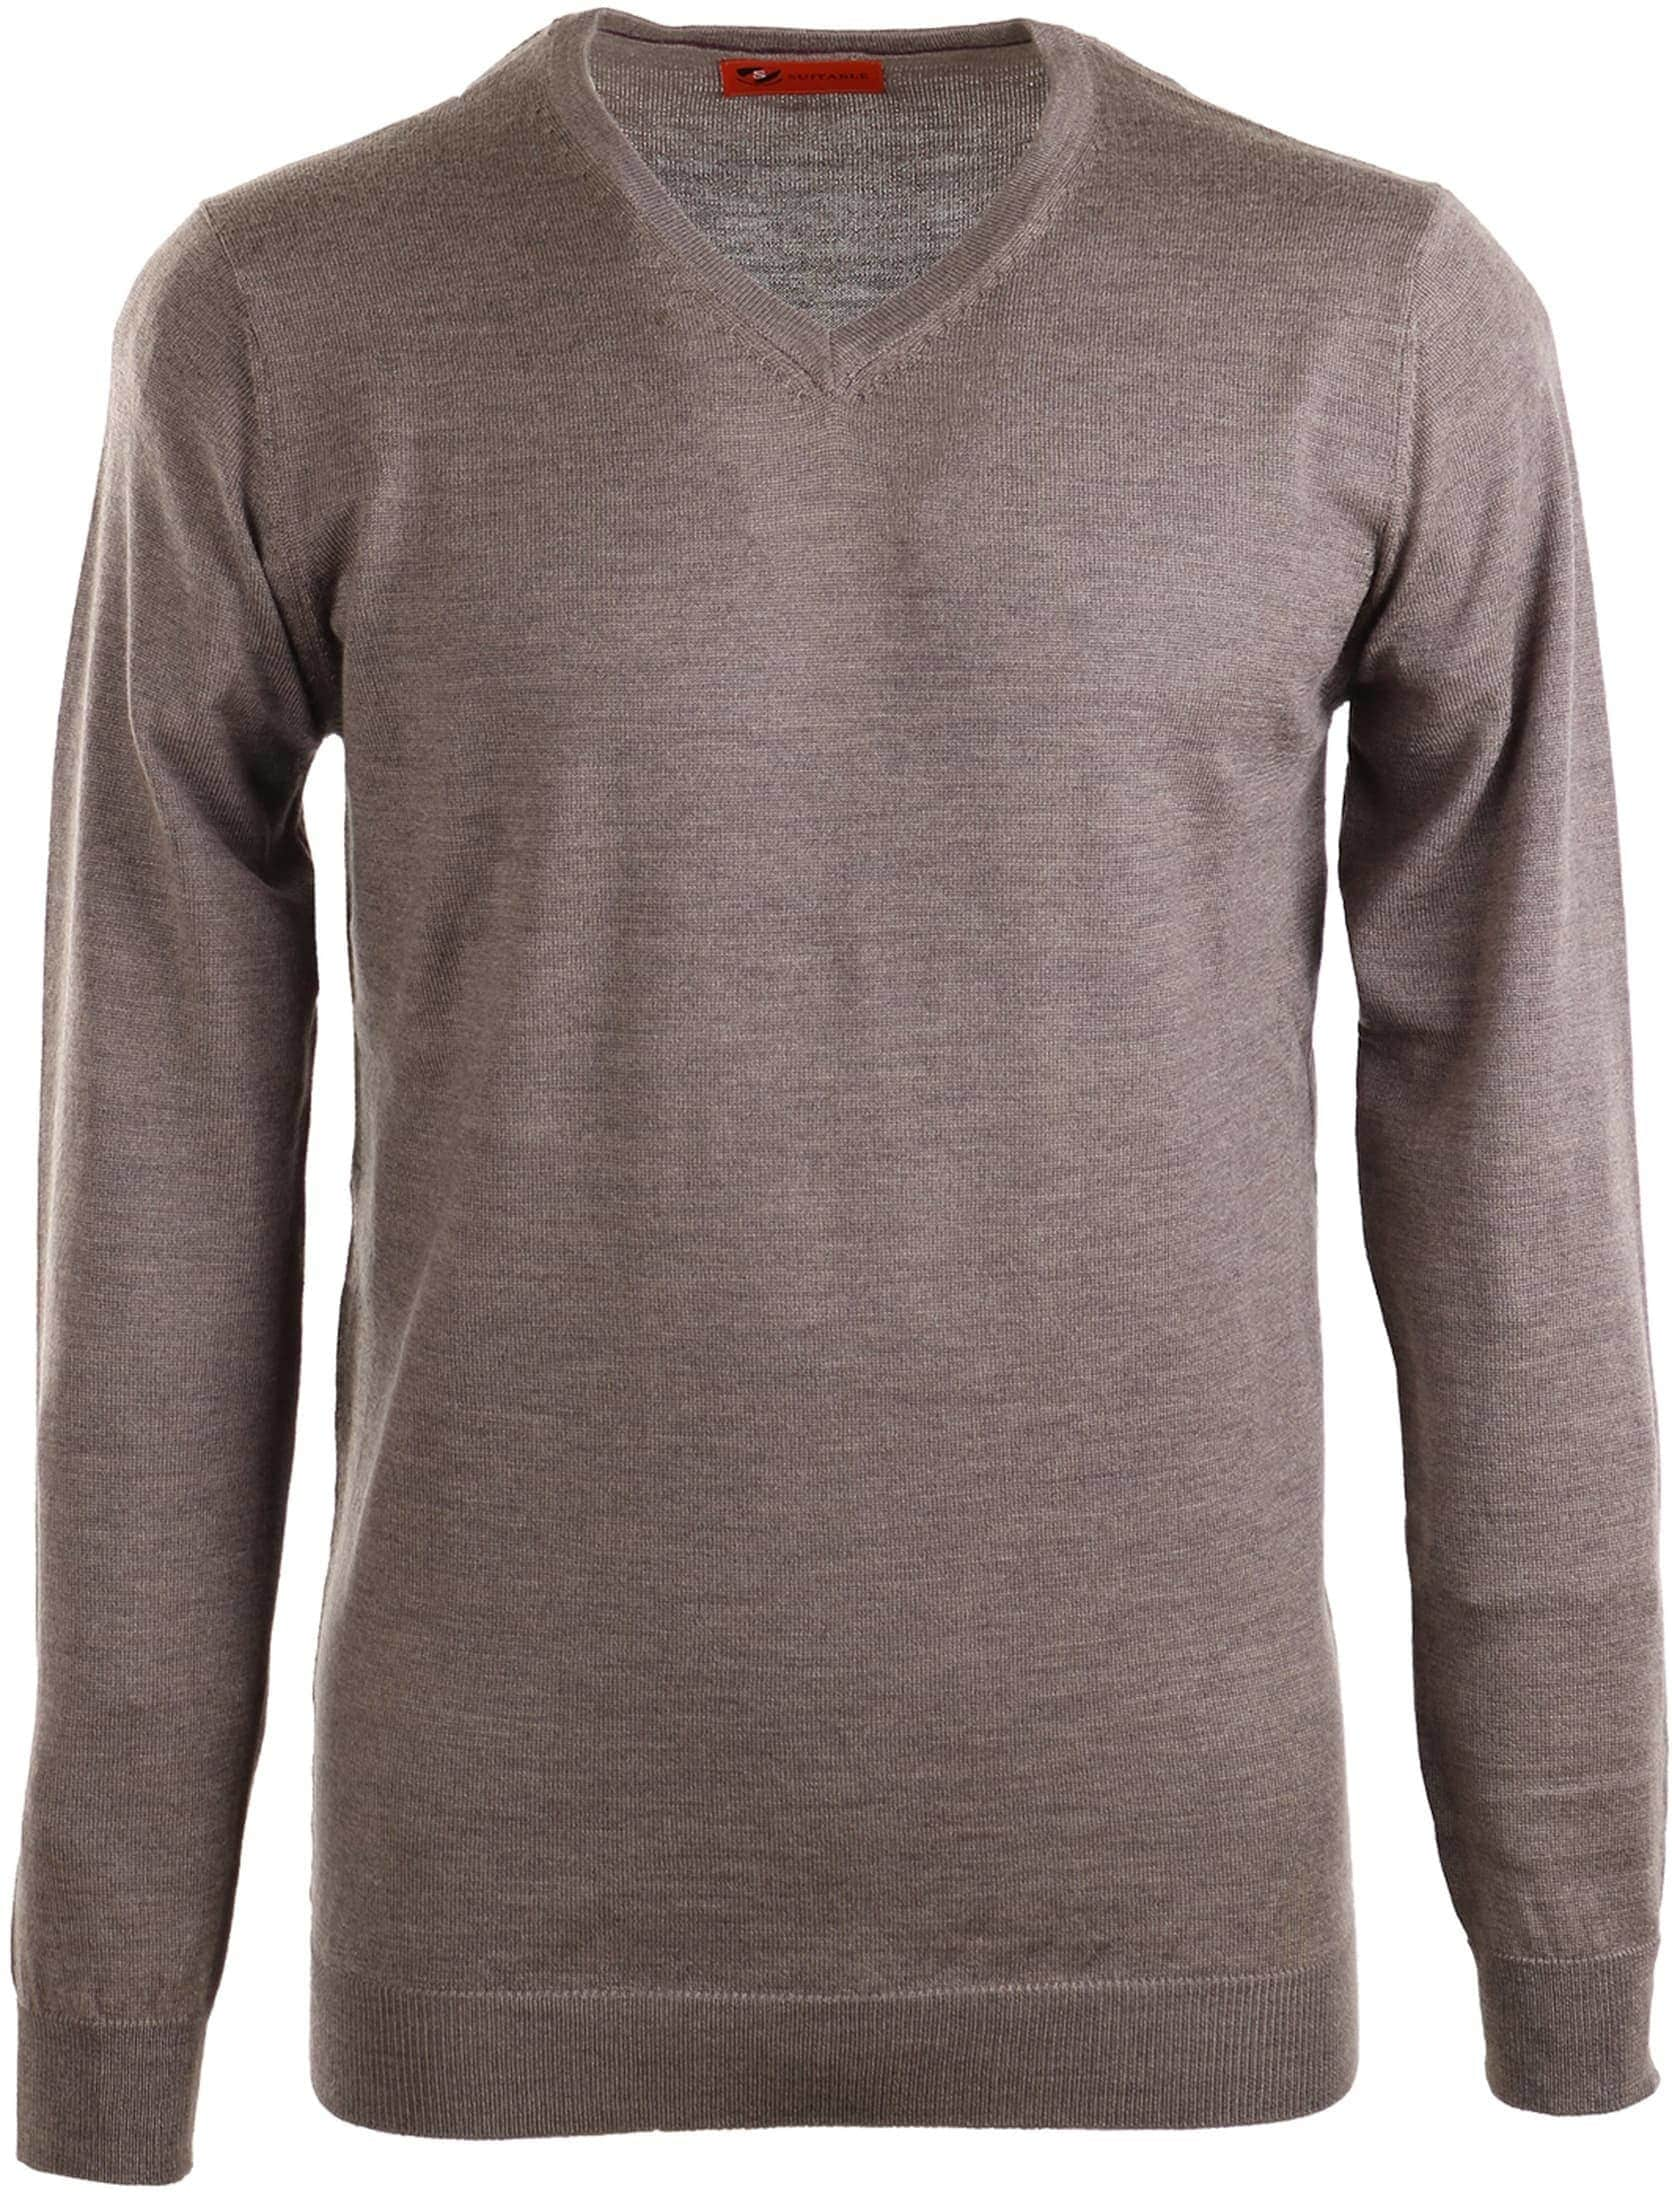 Suitable Pullover Merino Wool Brown foto 0